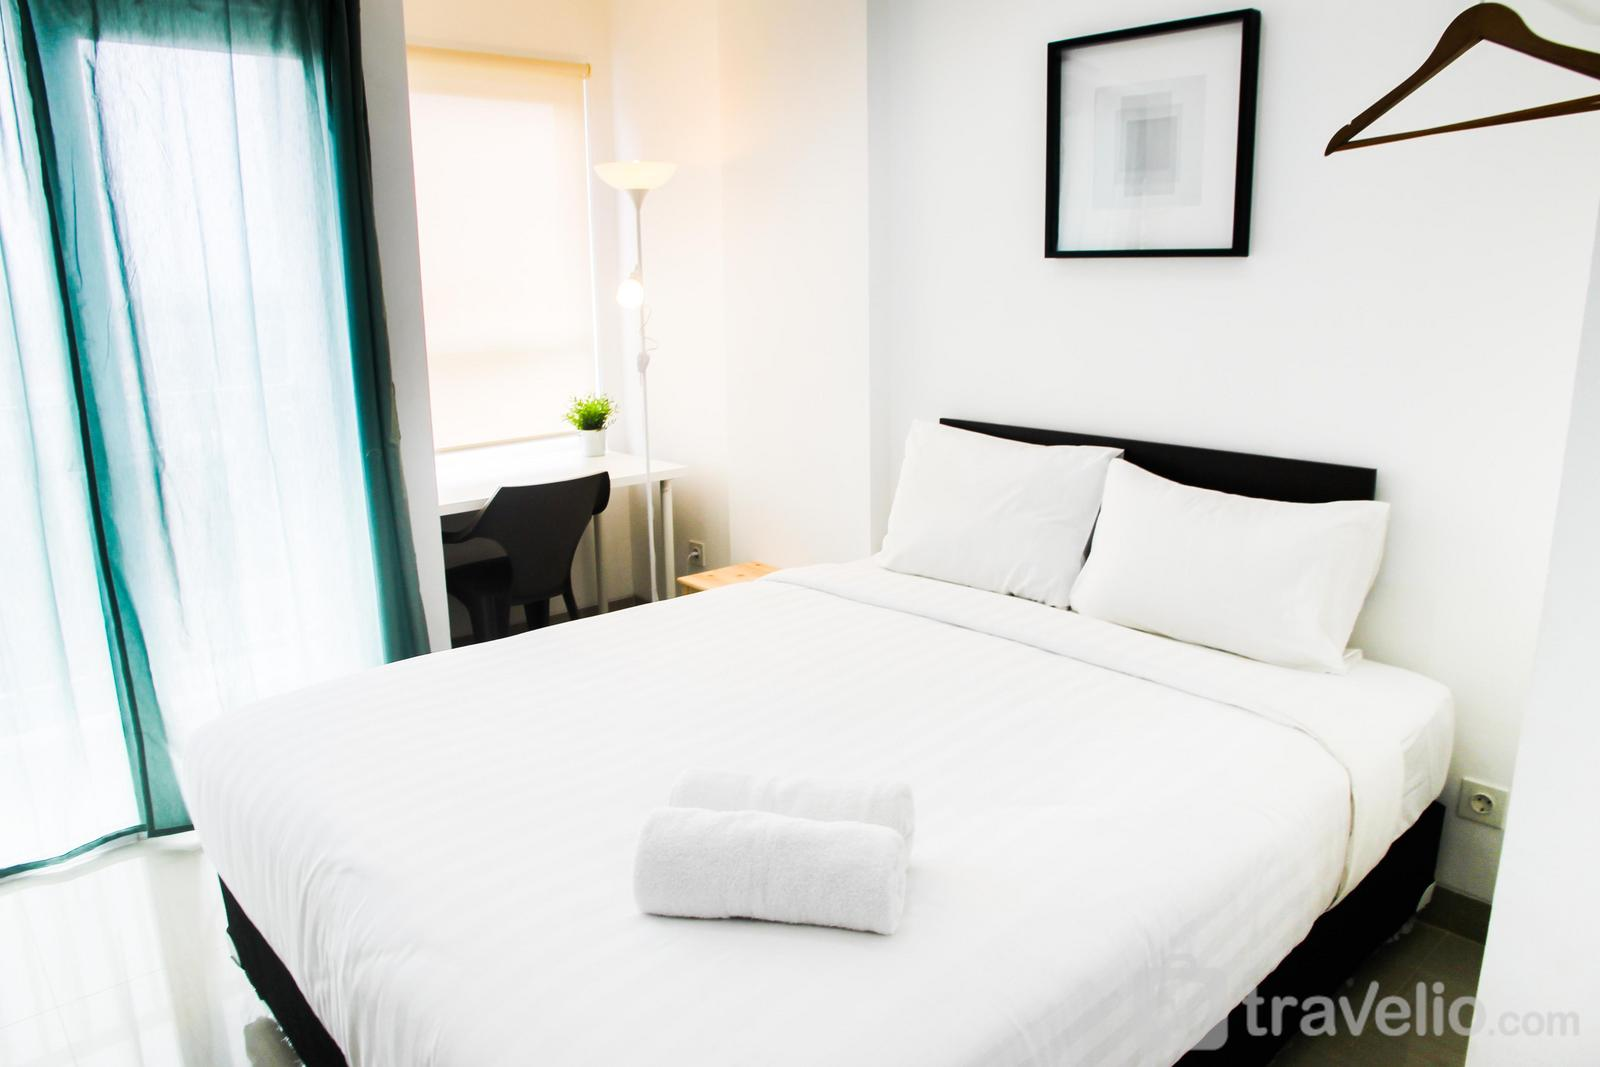 Poris 88 - Exclusive Studio Room Poris 88 Apartment By Travelio